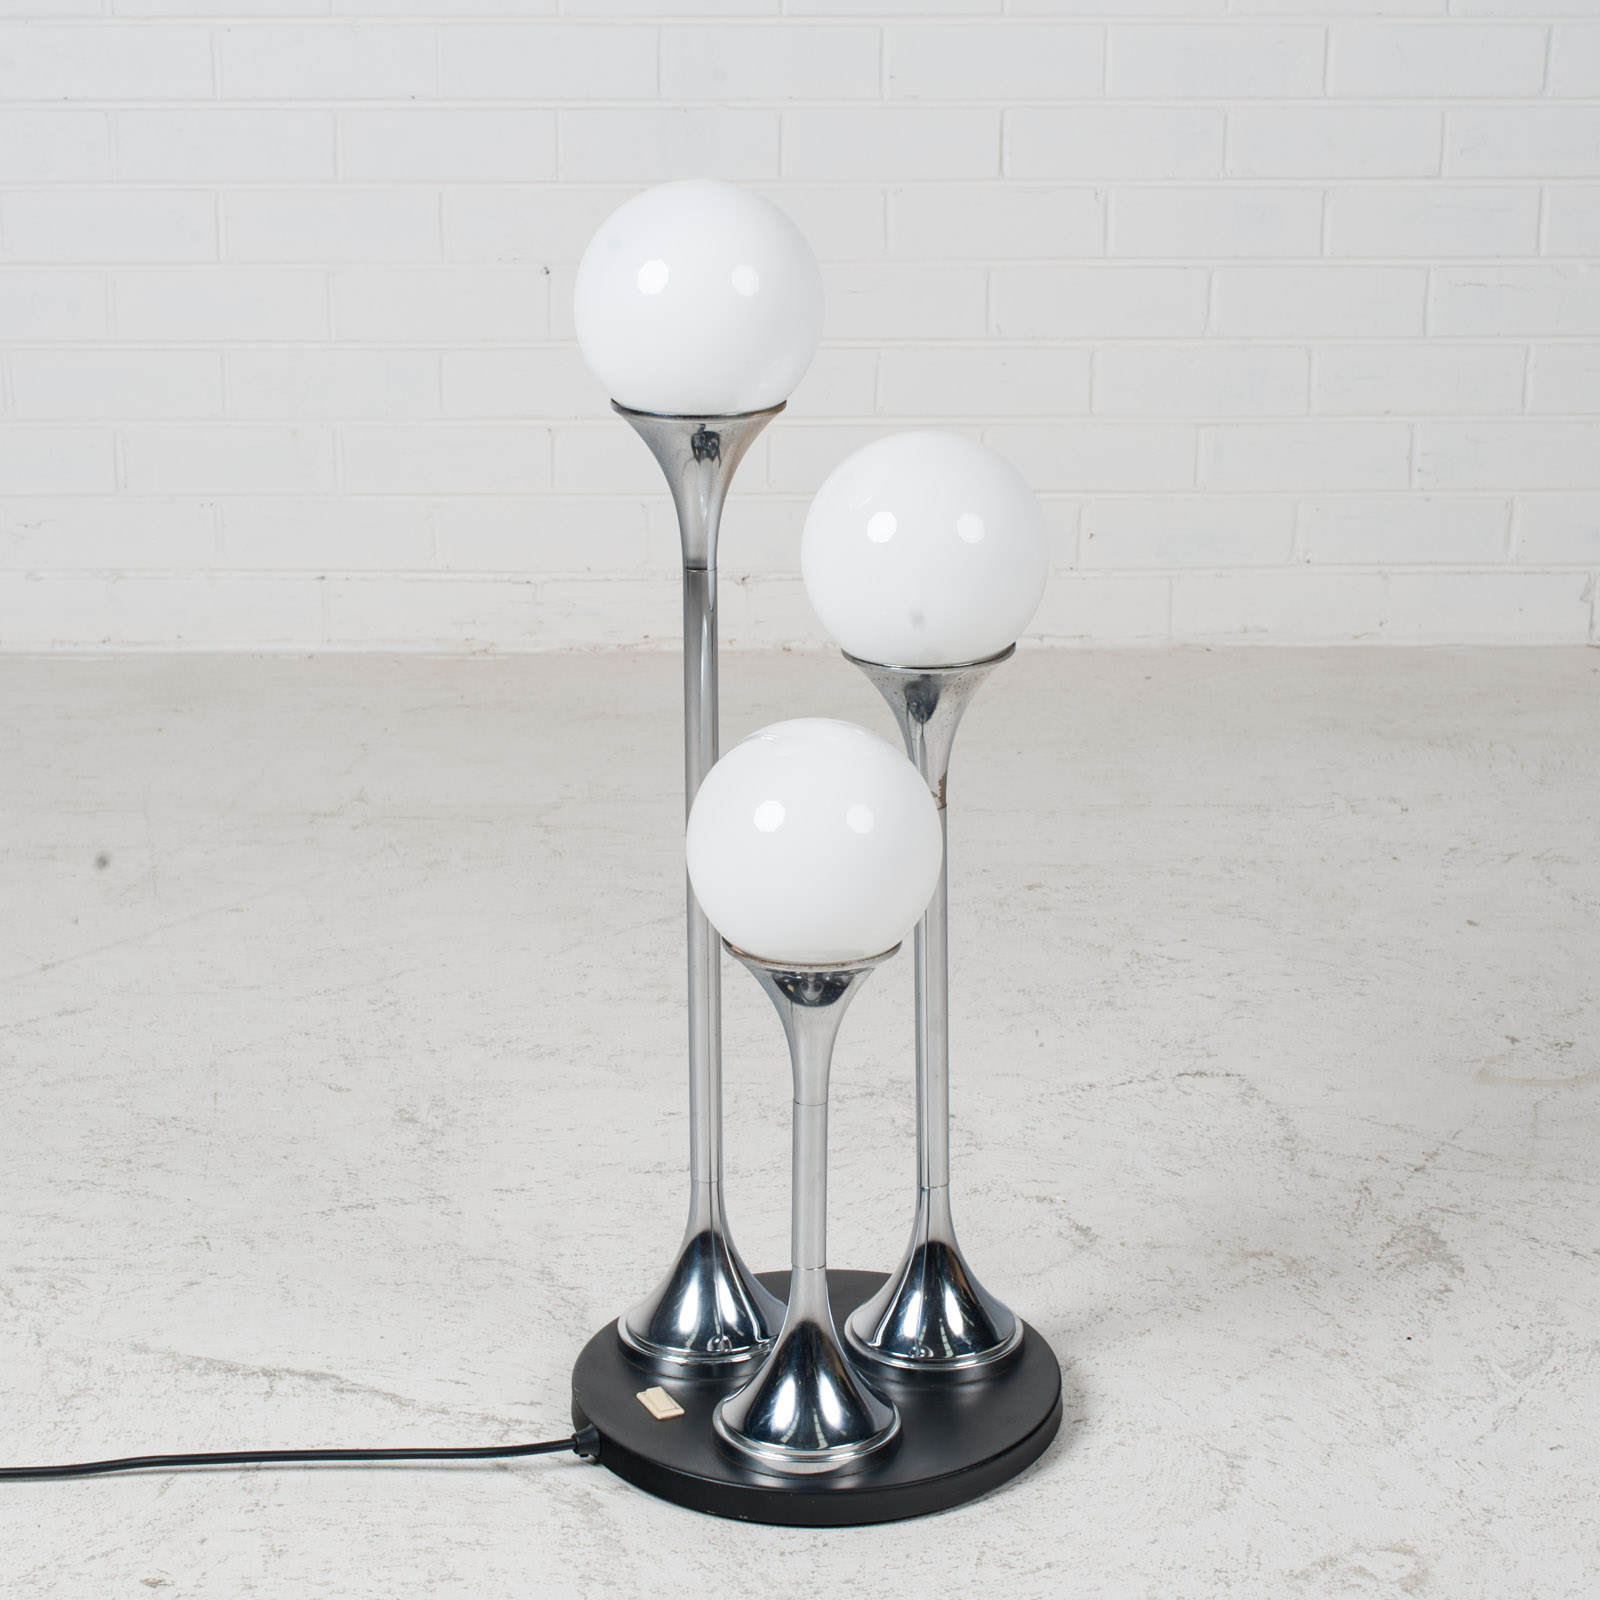 Chrome Floor Lamp By Targetti Sankey 1960s Italy 02